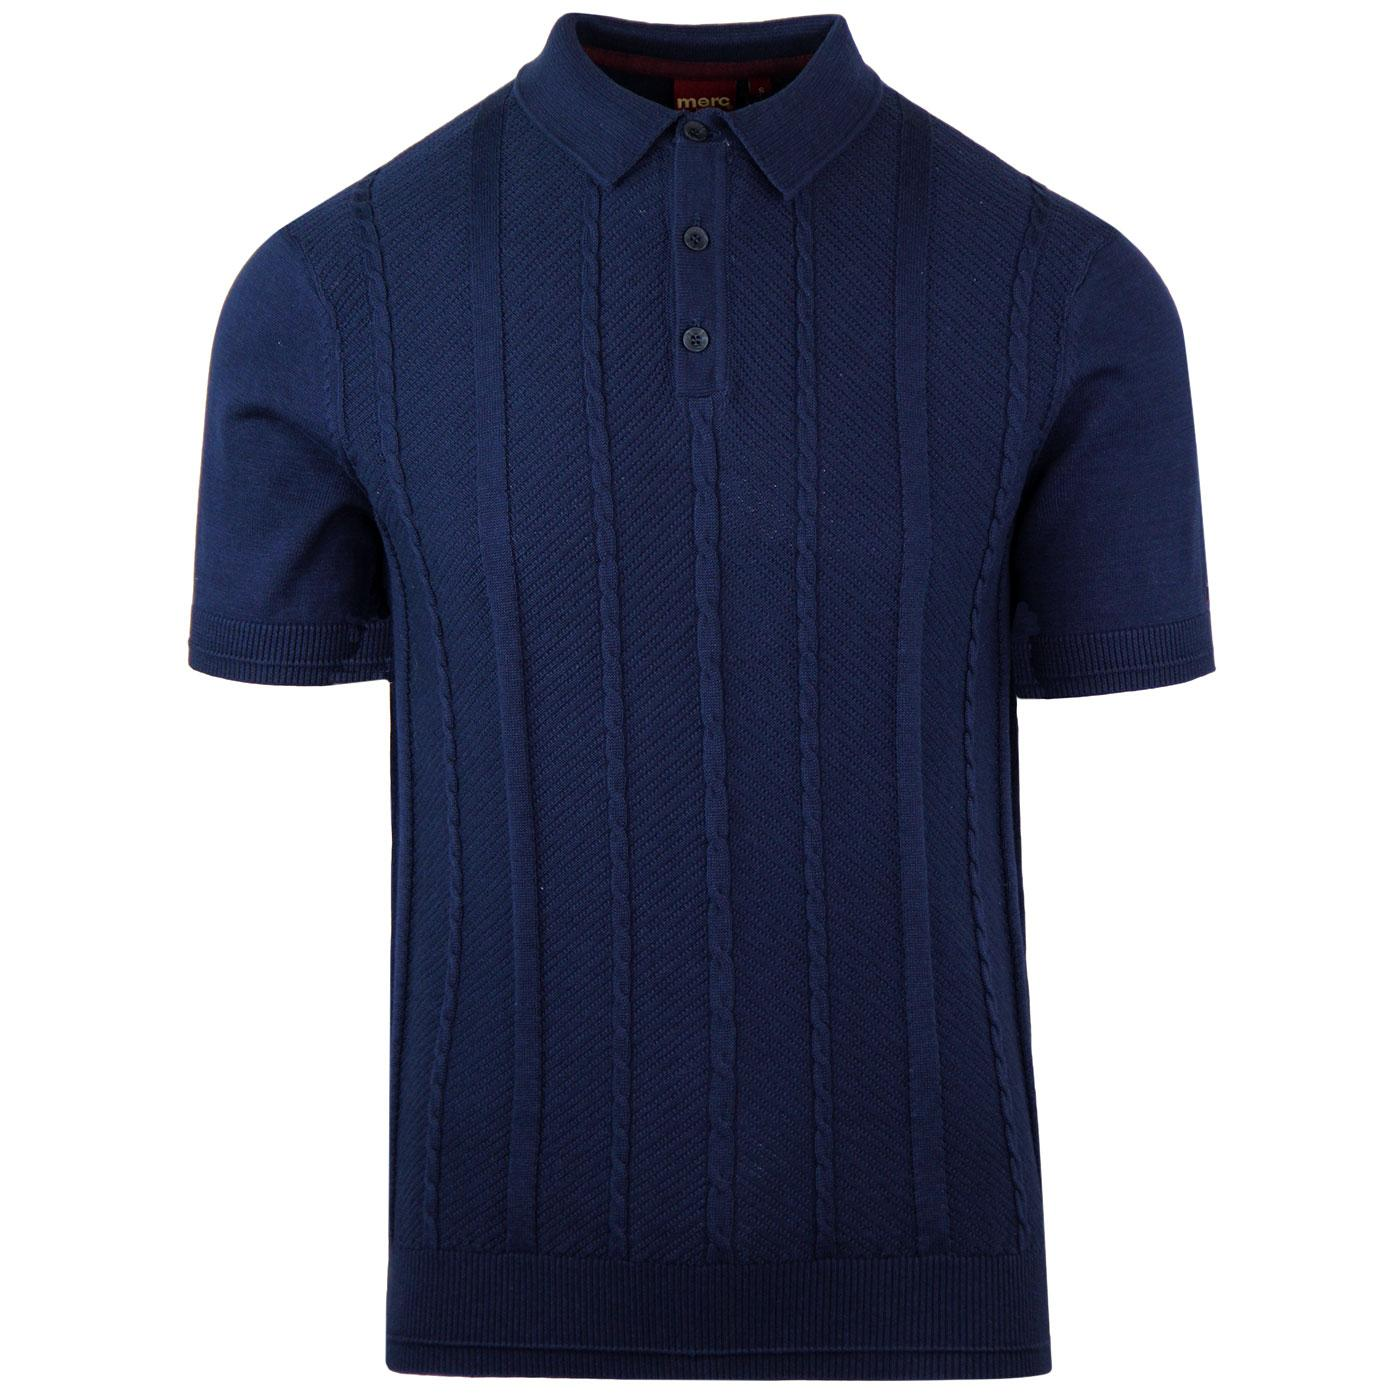 Frith MERC Retro Mod Cable Knit Polo Top (Navy)